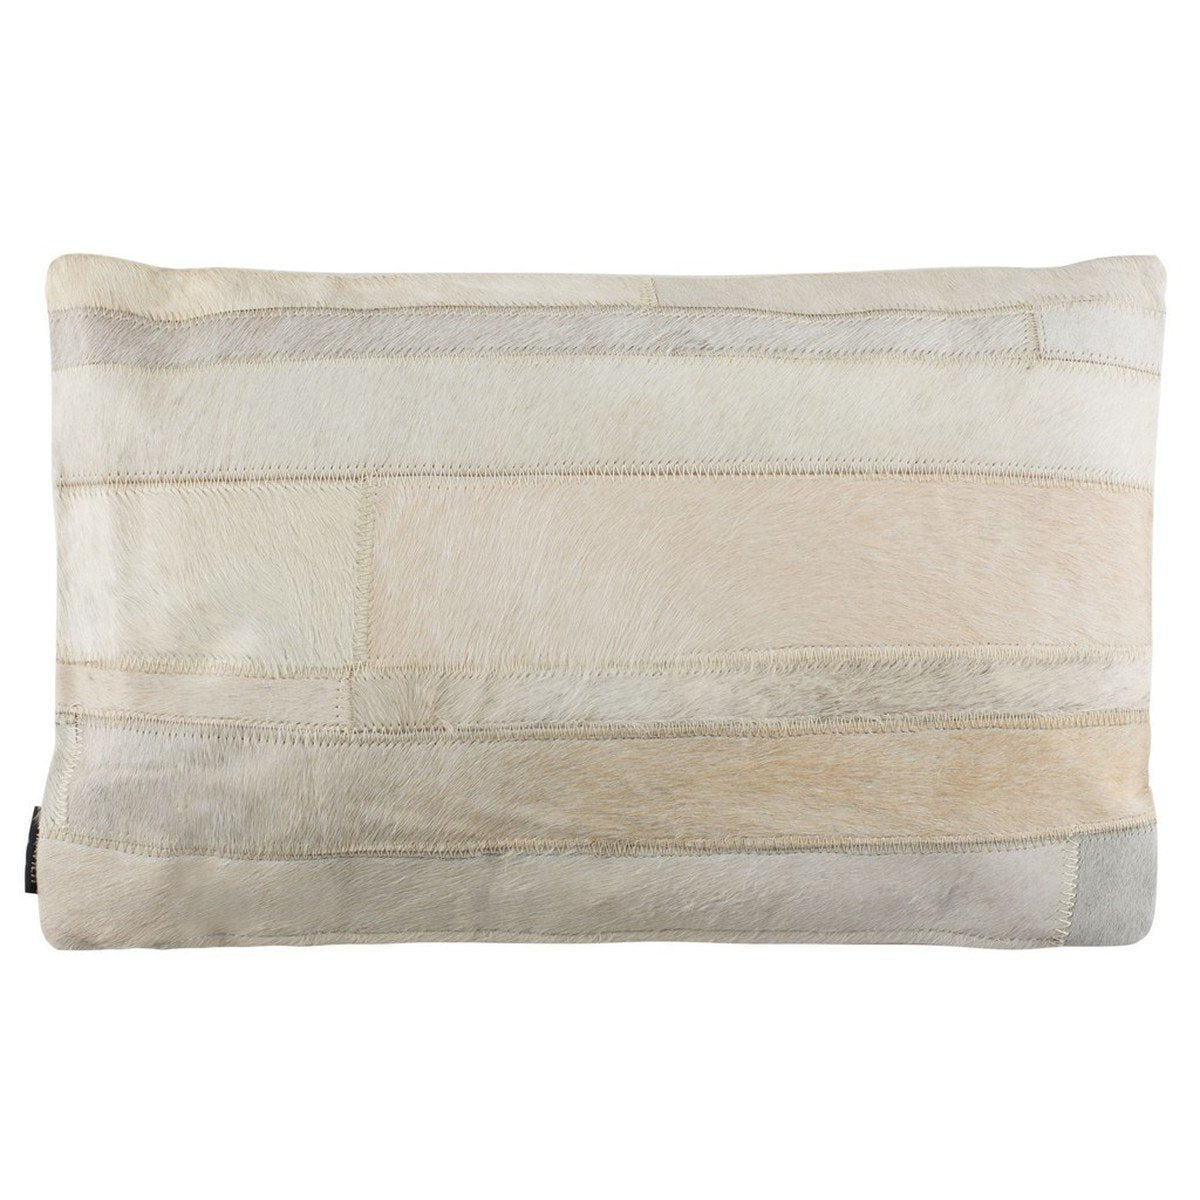 Ruled Cowhide Pillow.